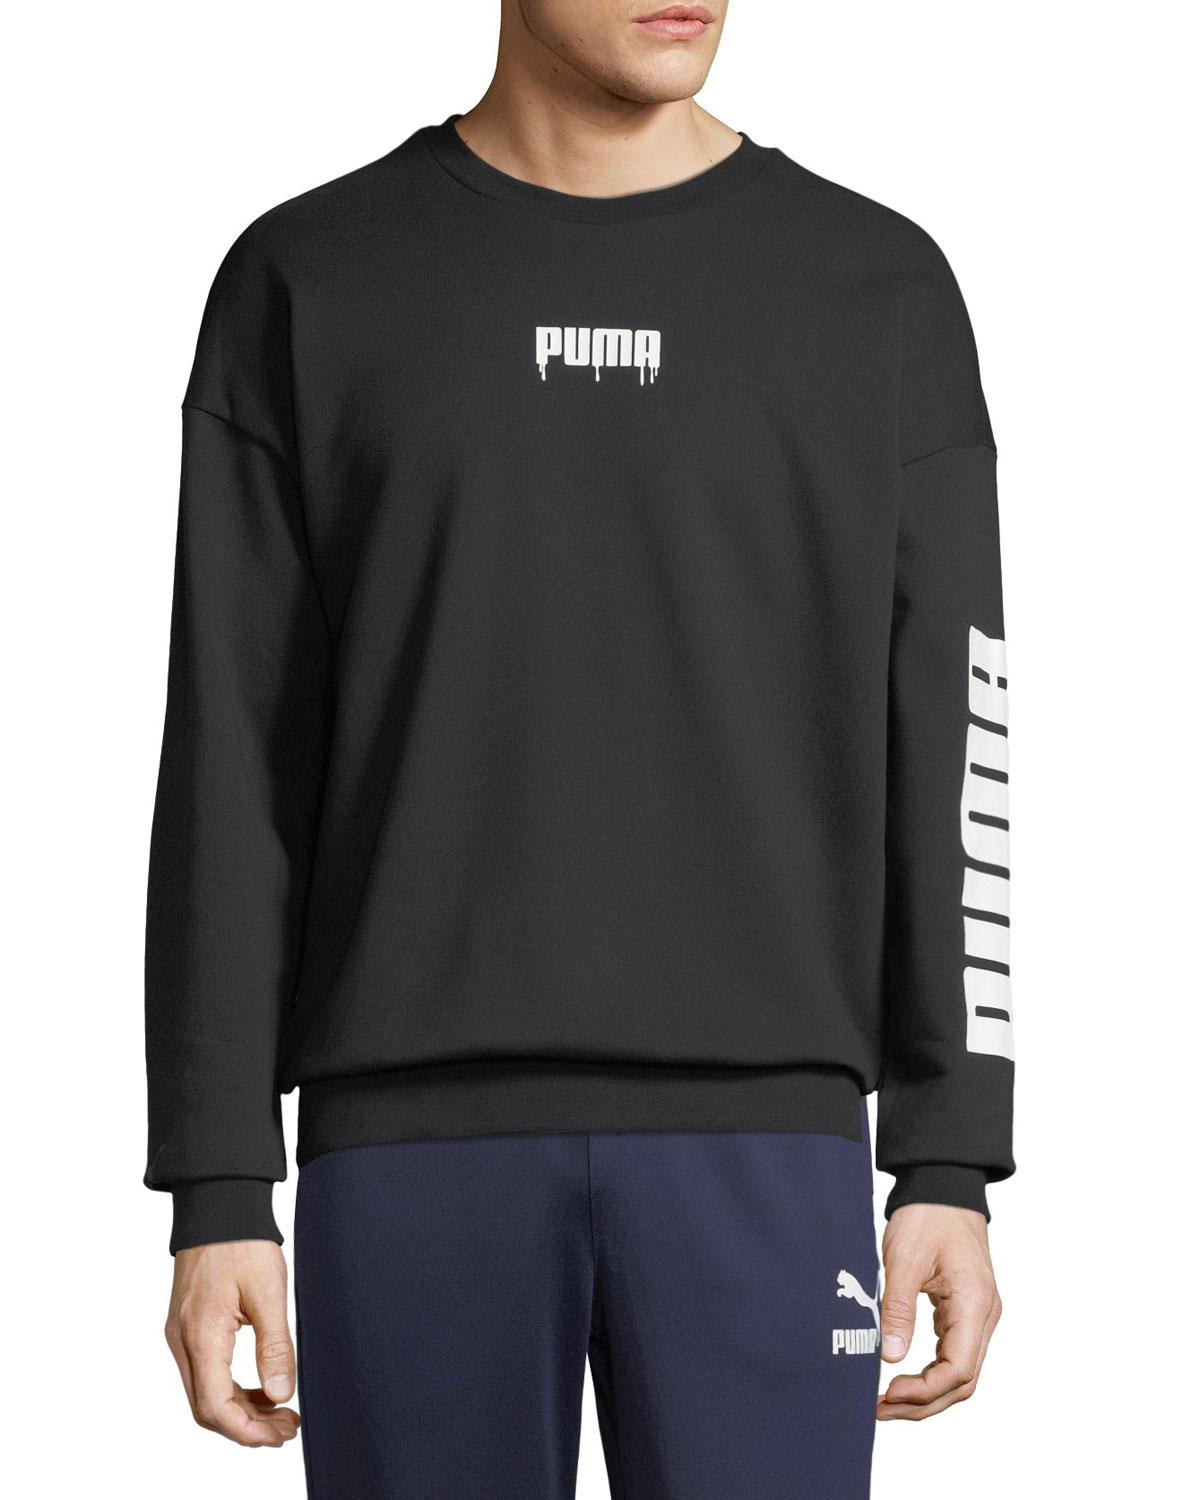 Men's Super Logo Graphic Sweatshirt